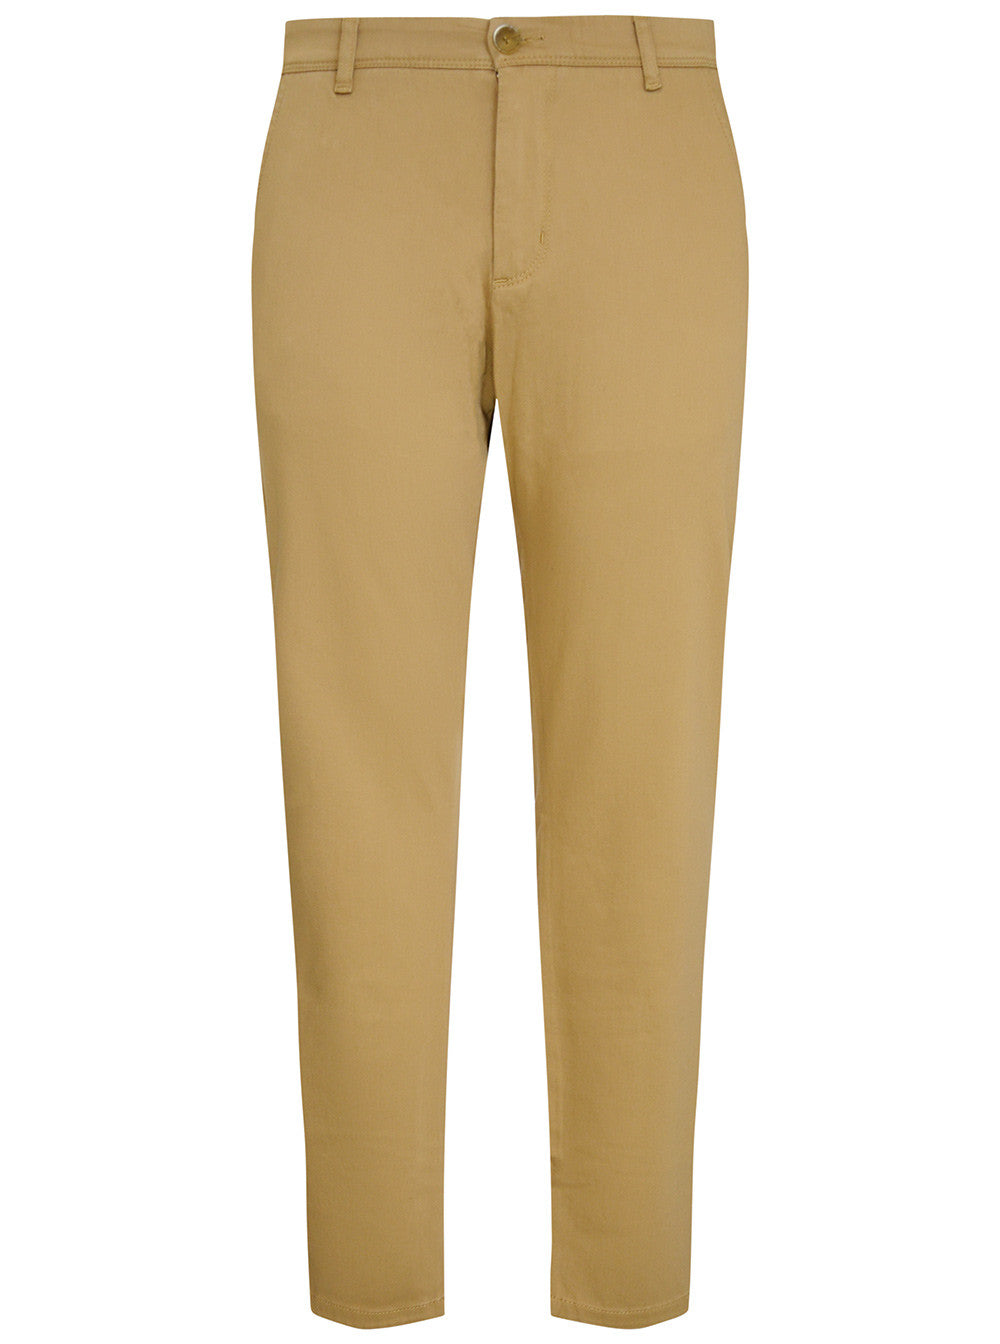 Camel Stretch Cotton Chino Trouser